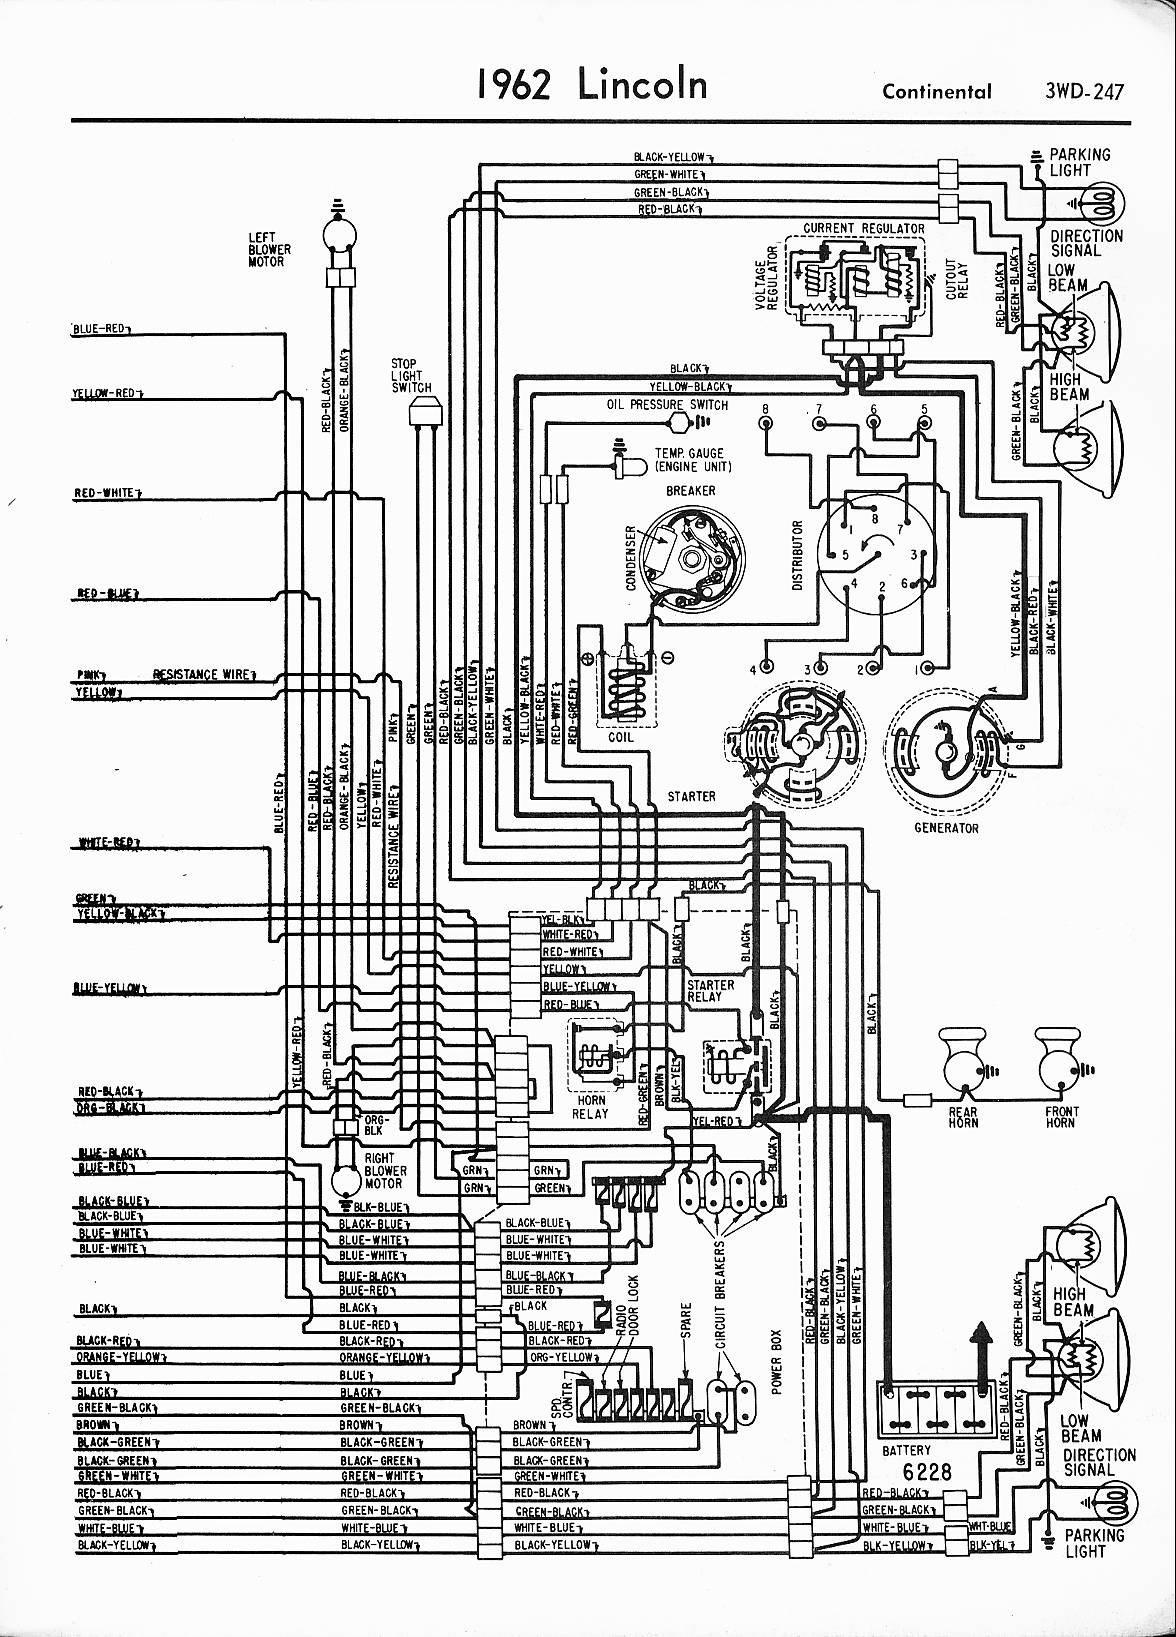 1998 lincoln continental wiringdiagram - image details, Wiring diagram